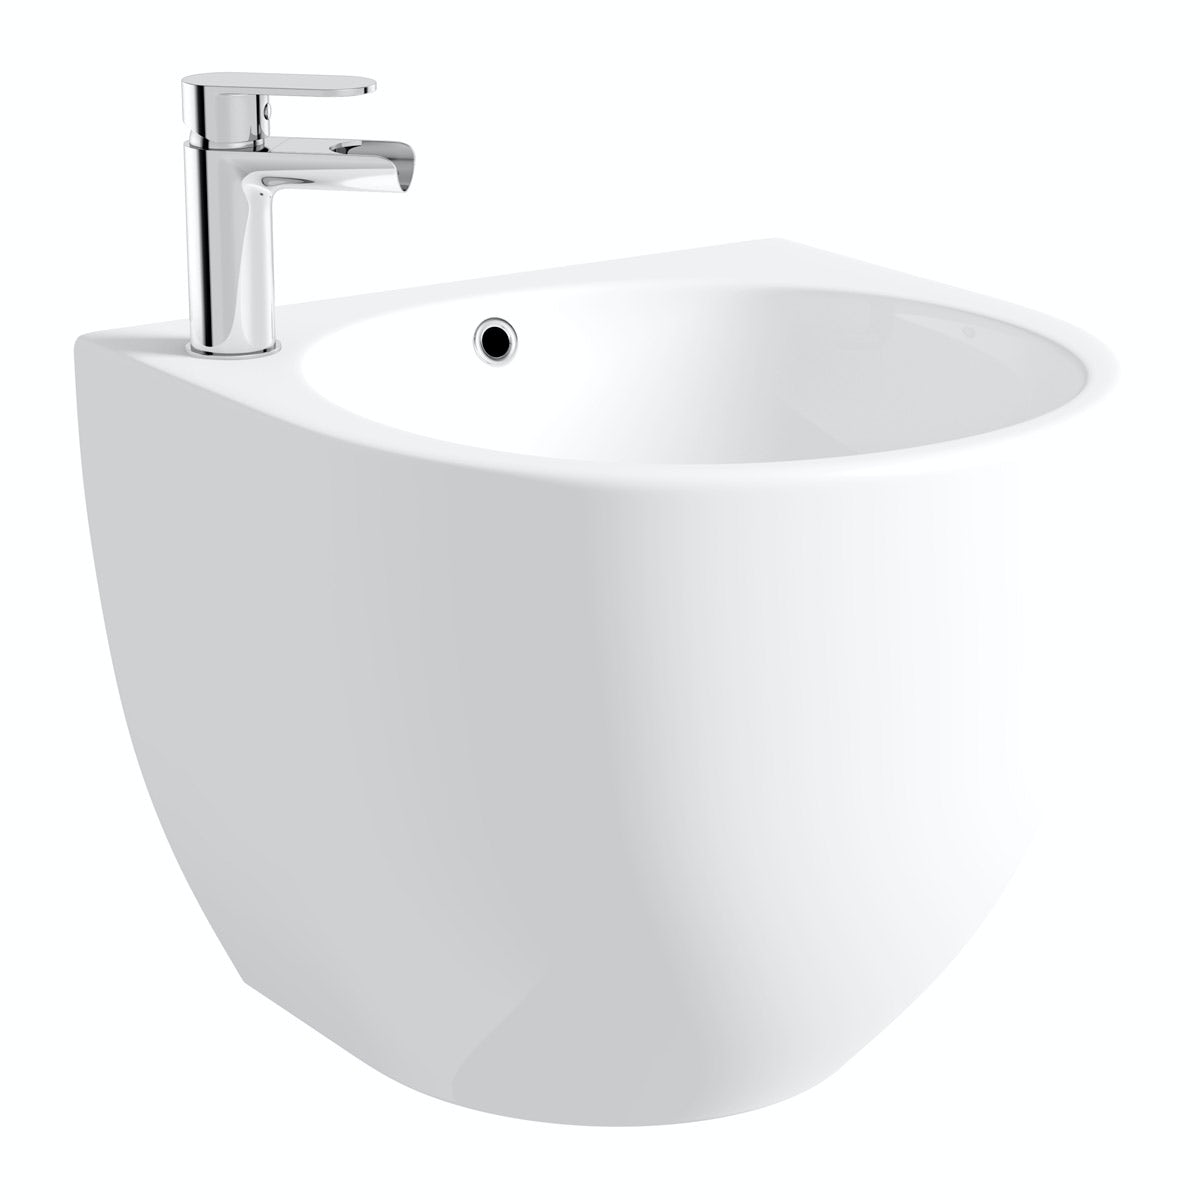 Mode Harrison 1 tap hole wall hung basin 500mm with waste